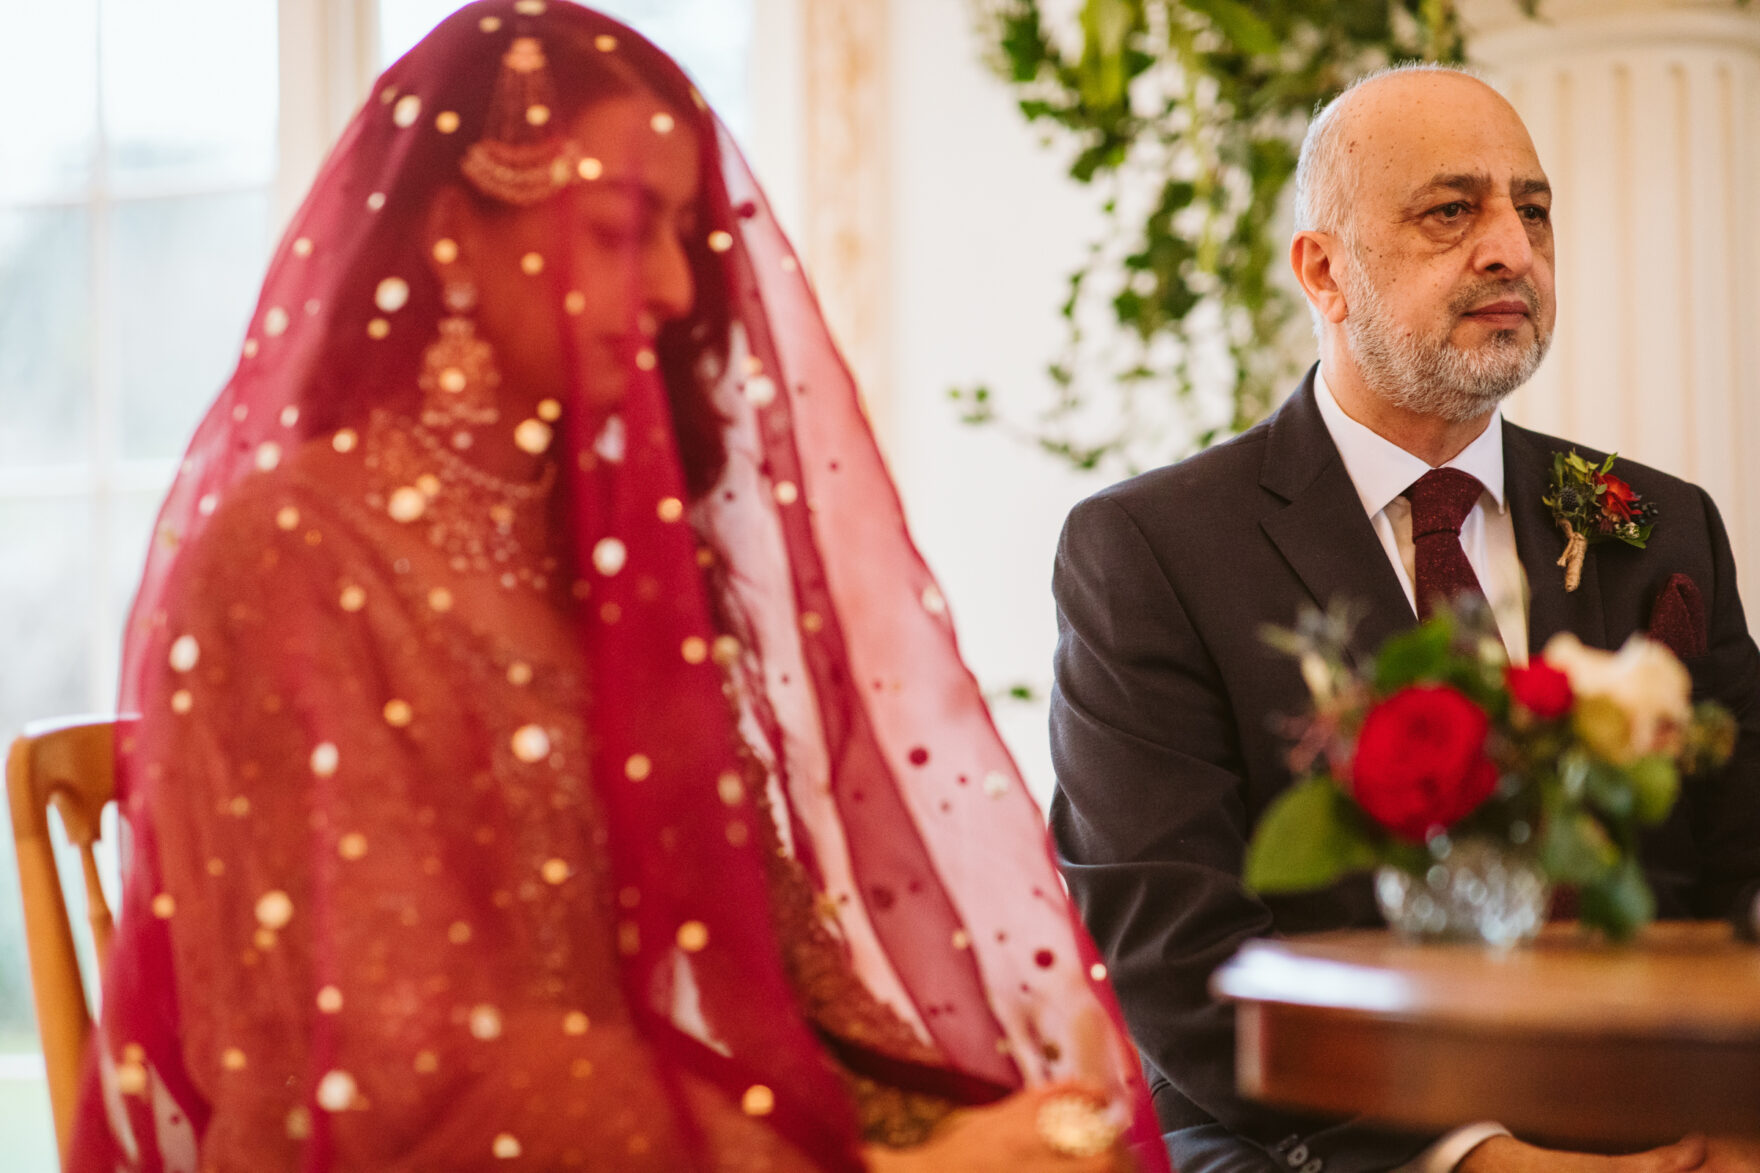 Asian Bride's father praying at a wedding ceremony